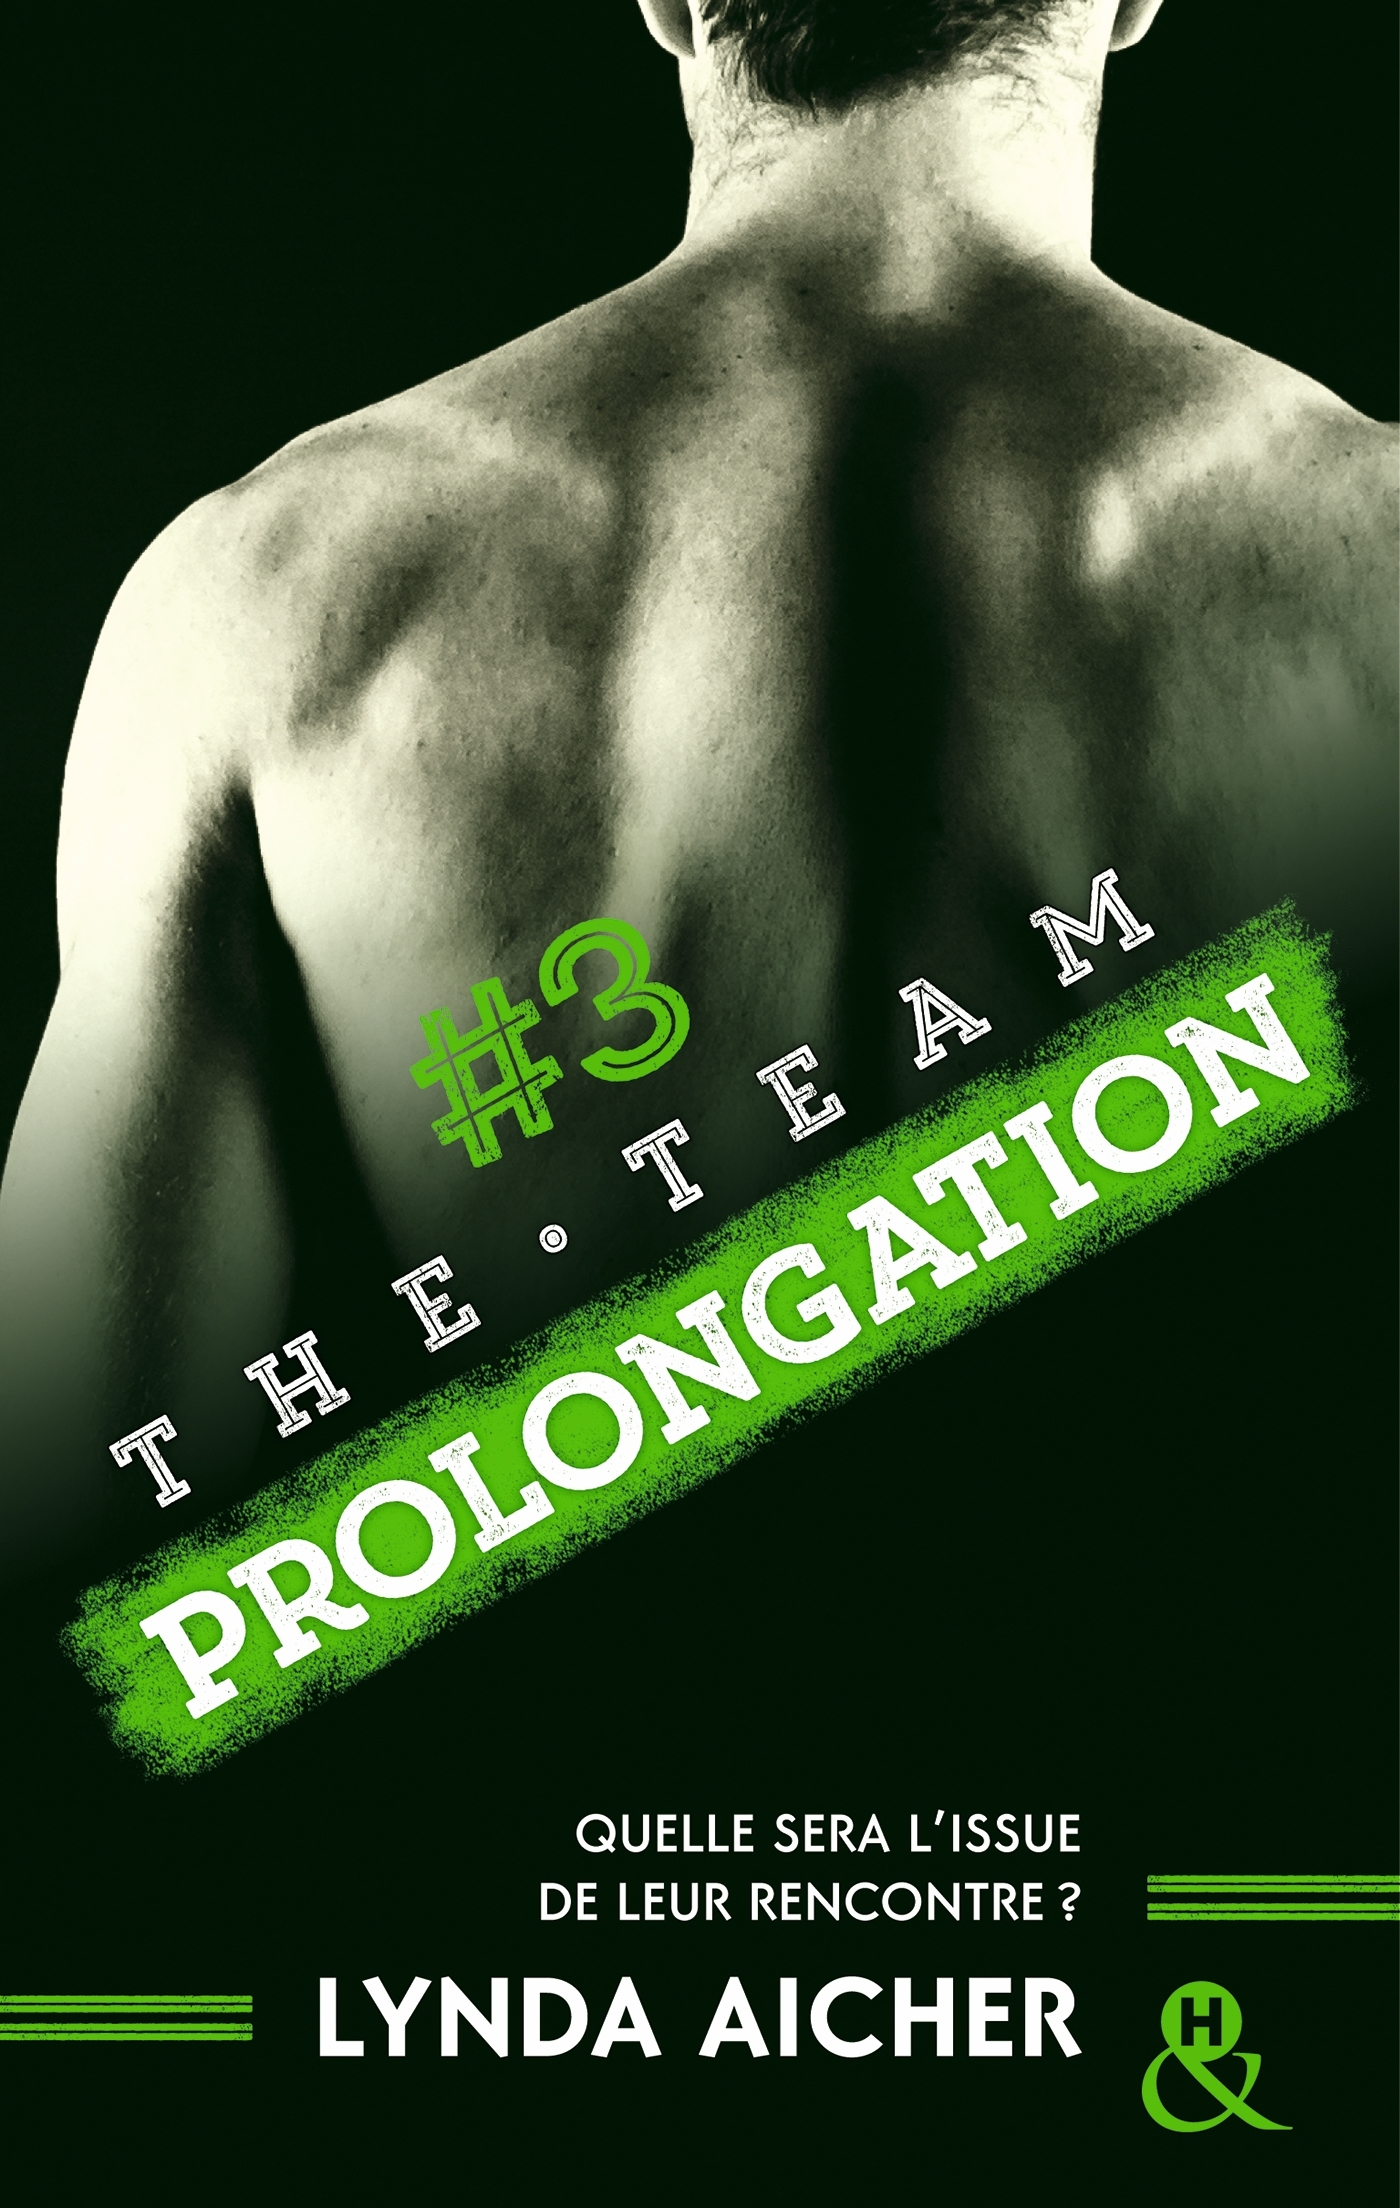 #3 PROLONGATION - SERIE THE TEAM